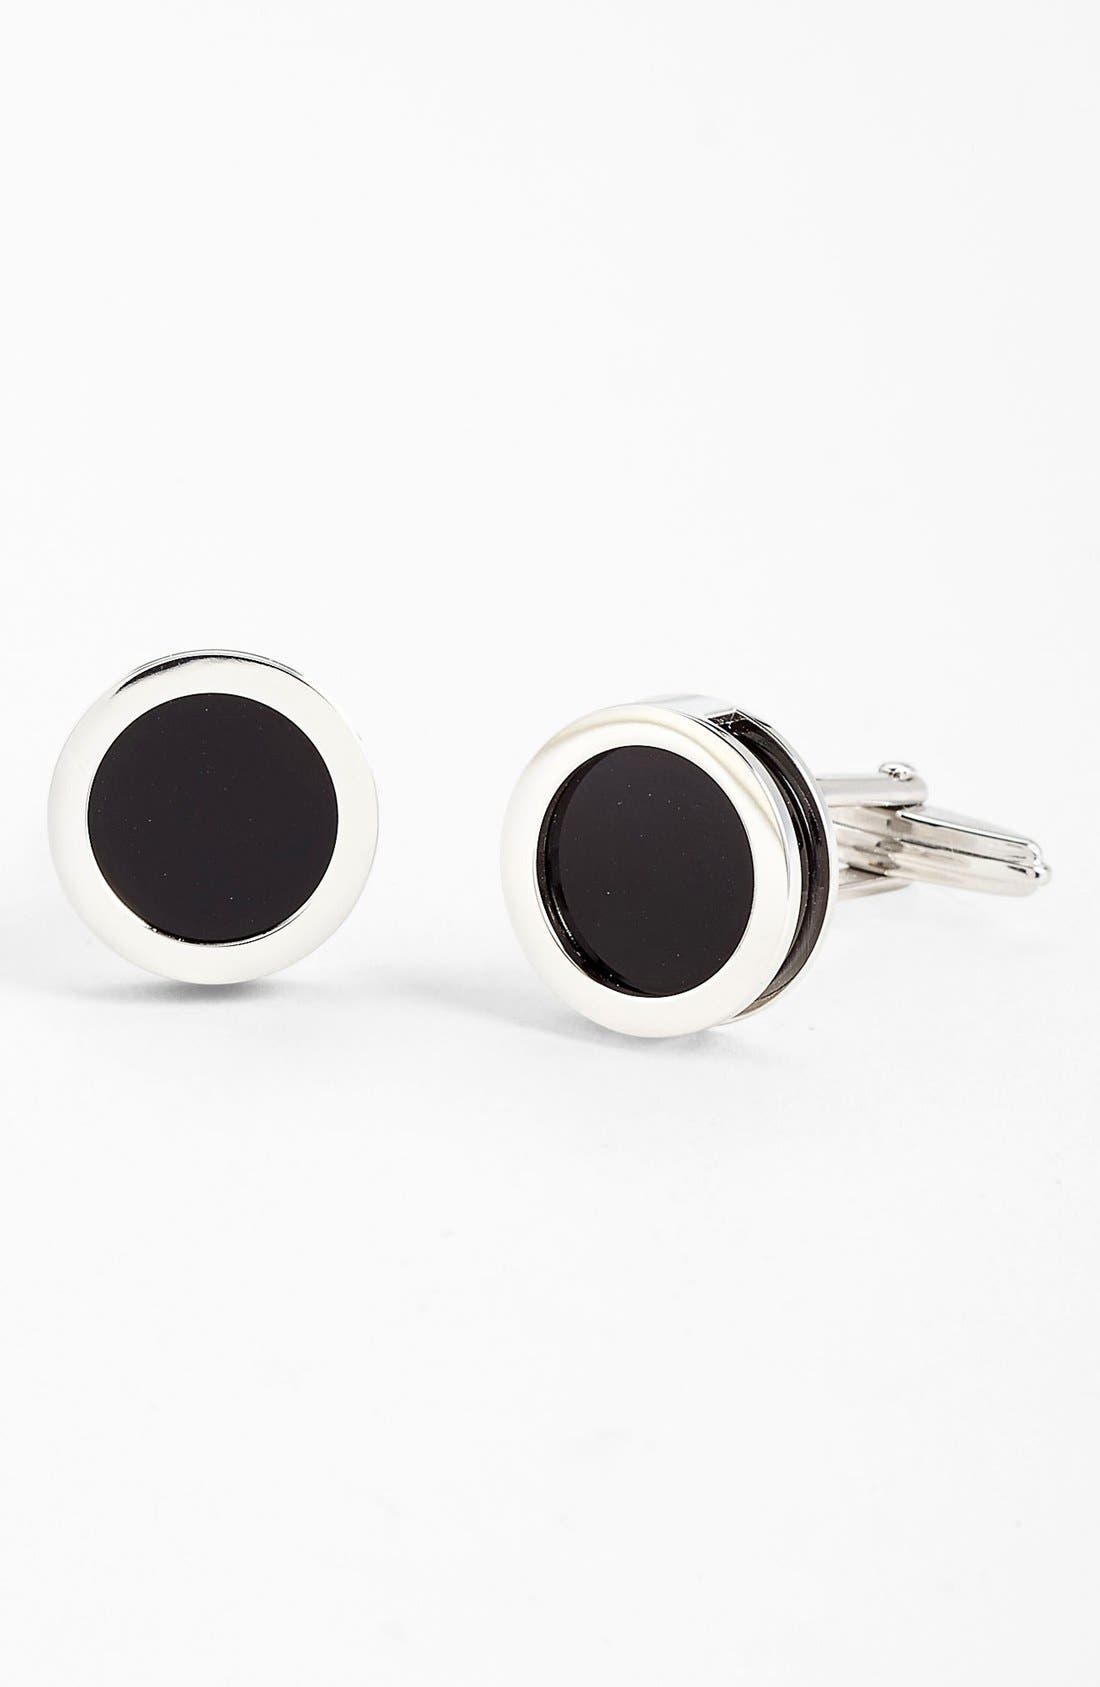 Main Image - Lanvin Interchangeable Onyx & Mother-of-Pearl Cuff Links